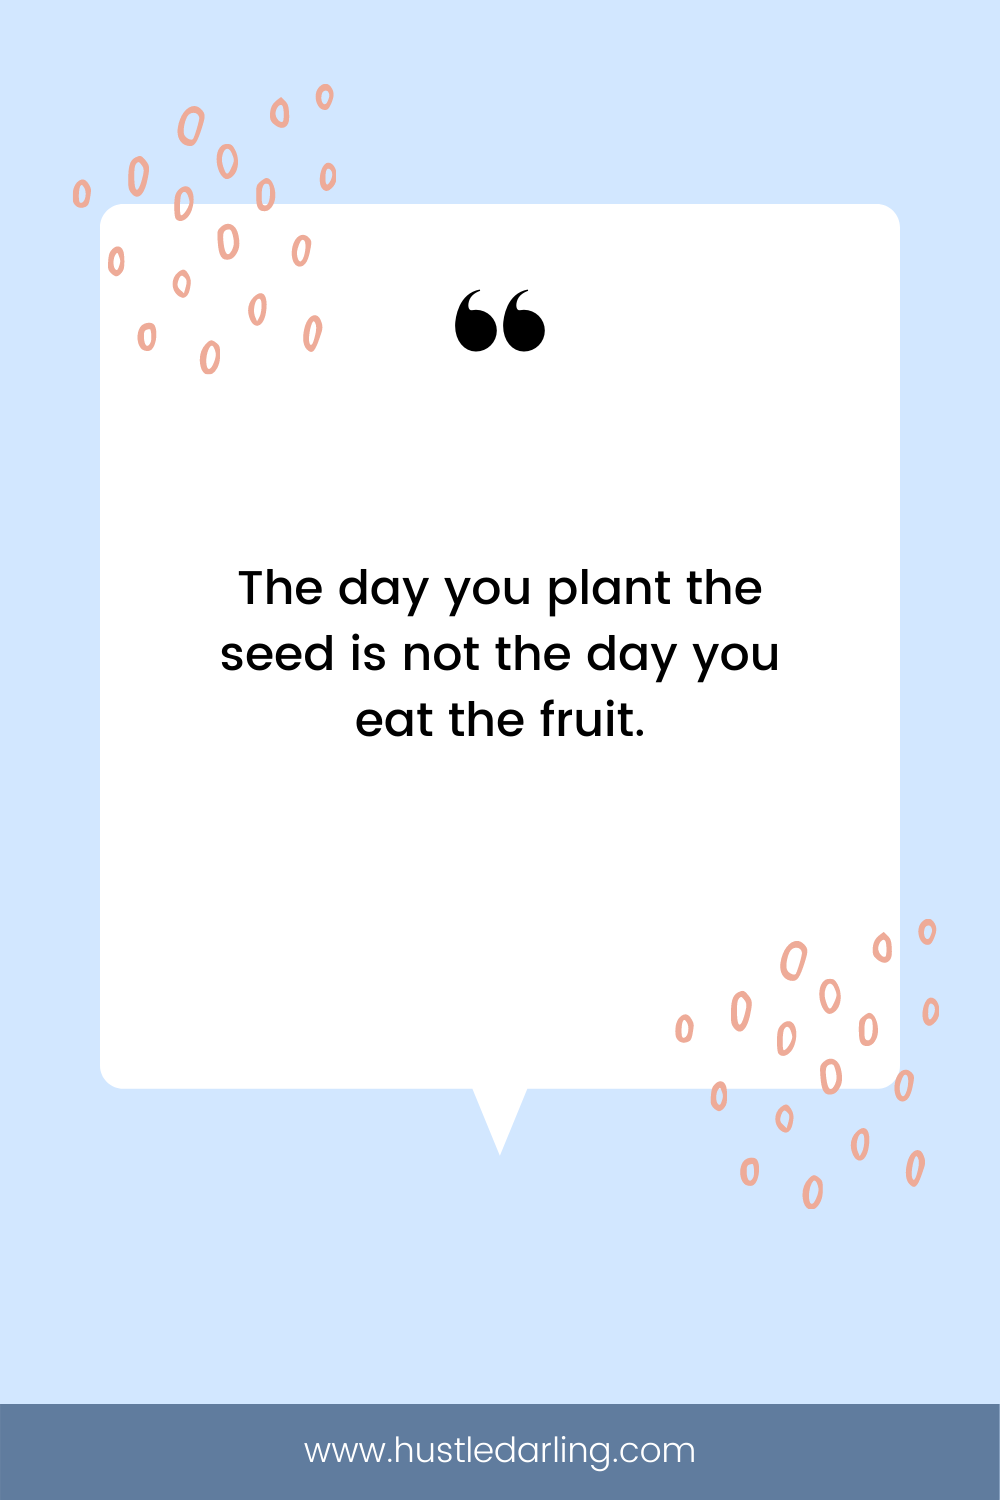 """Pink, line-drawn seeds are in the top left corner and the bottom right corner of the image. On a light blue background is a white speech bubble with a large quotation mark at the top. Text underneath reads """"The day you plant the seed is not the day you eat the fruit"""""""